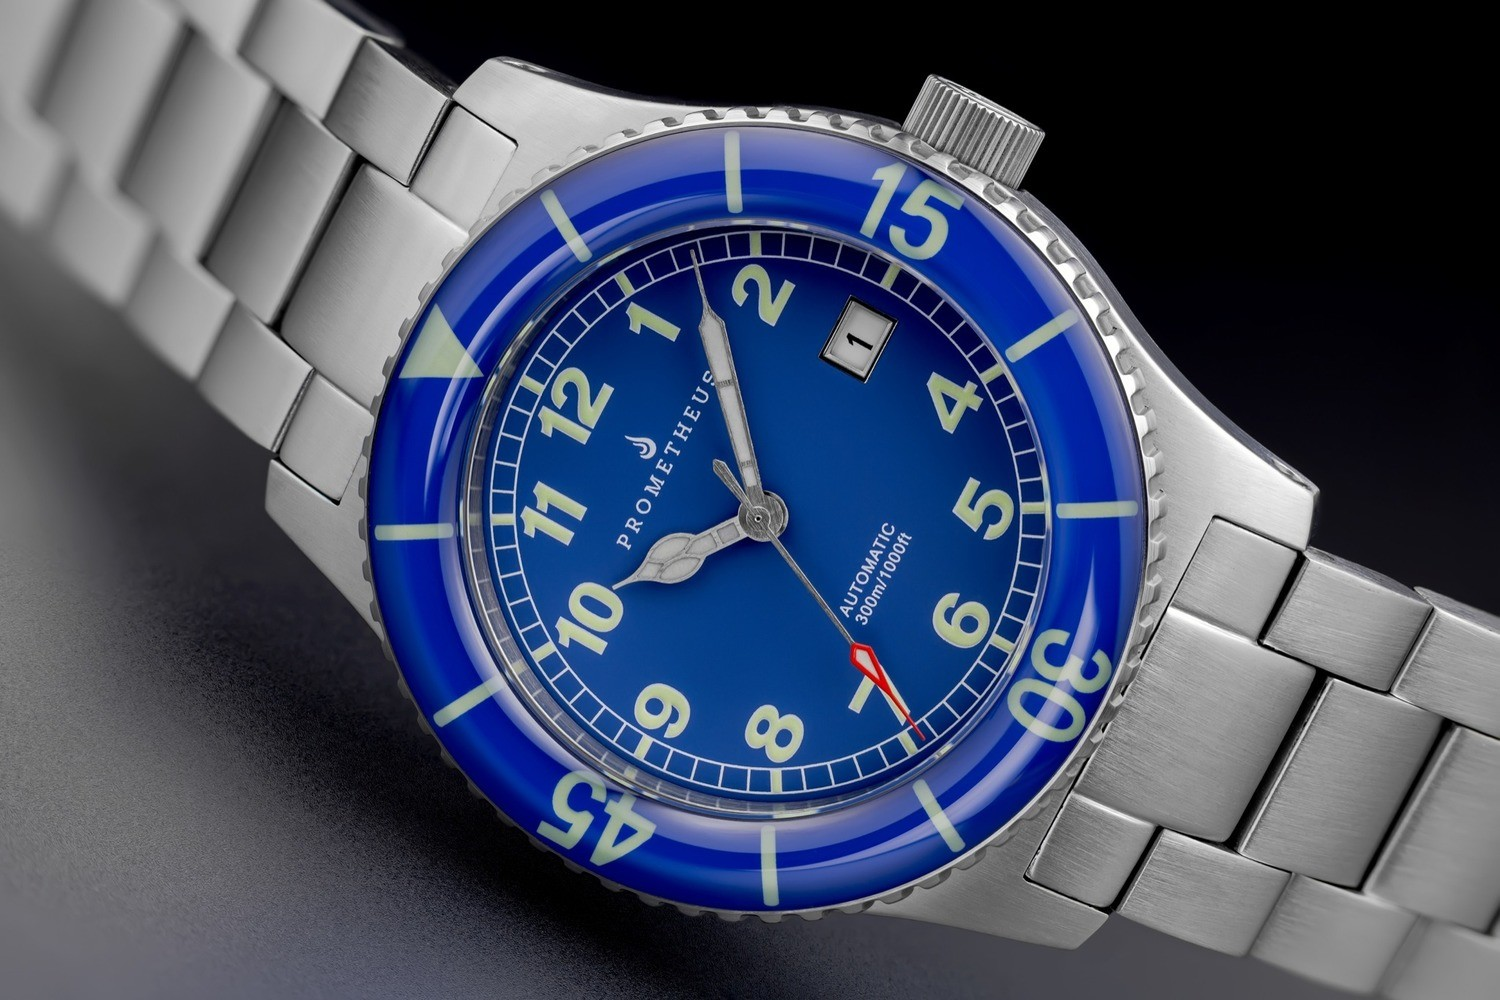 Prometheus Sailfish 300m Automatic Diver Watch Blue Dial Sapphire Bezel